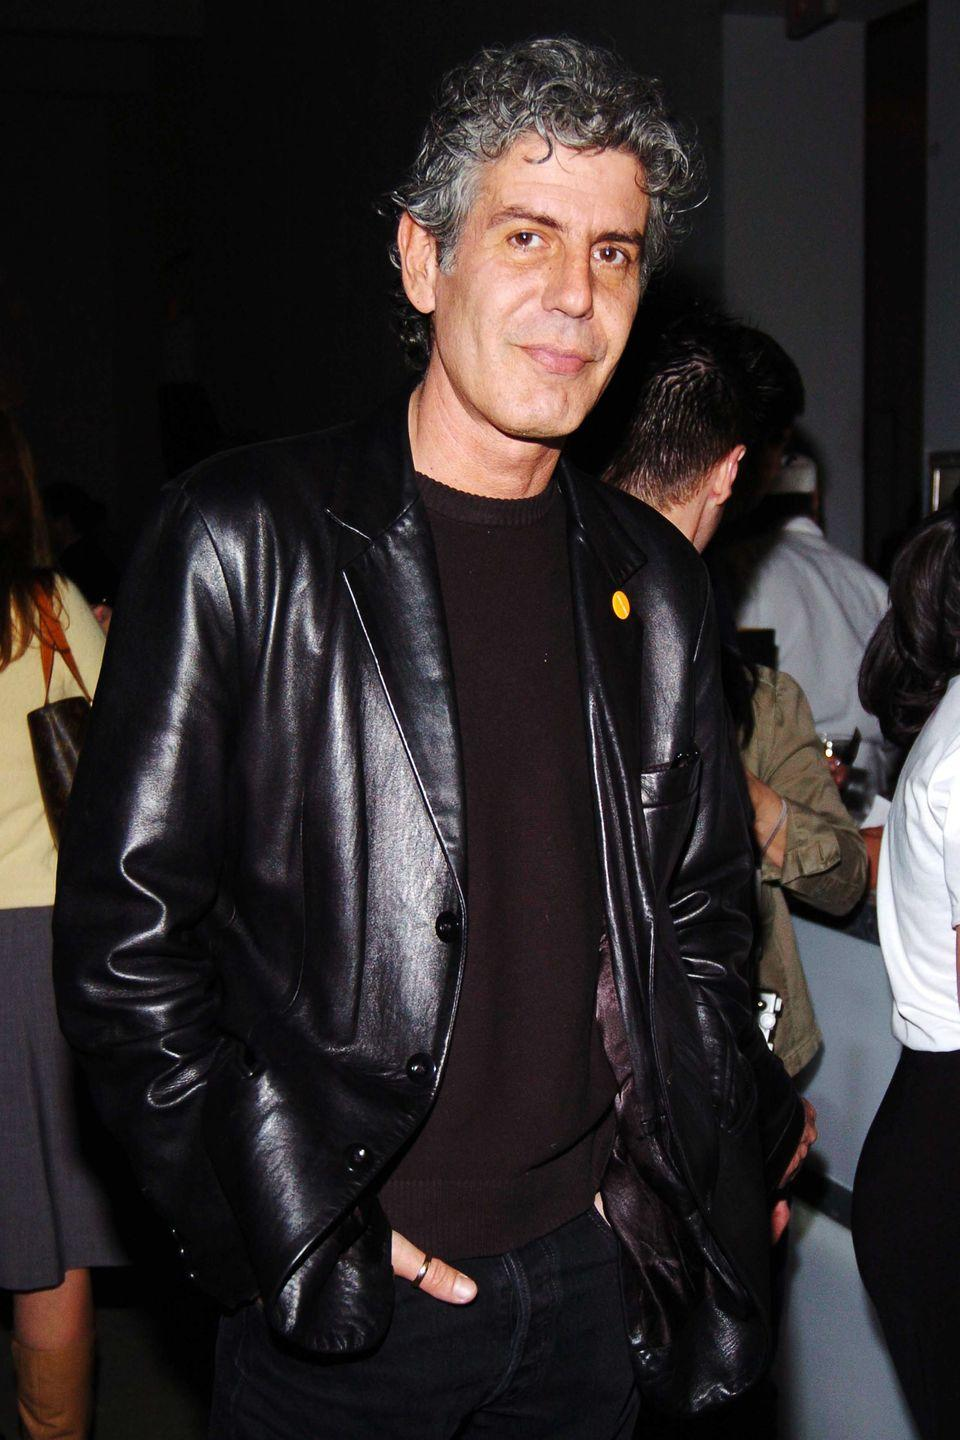 <p> Bourdain at the <em>Food & Wine</em> event on March 29, 2005.</p>